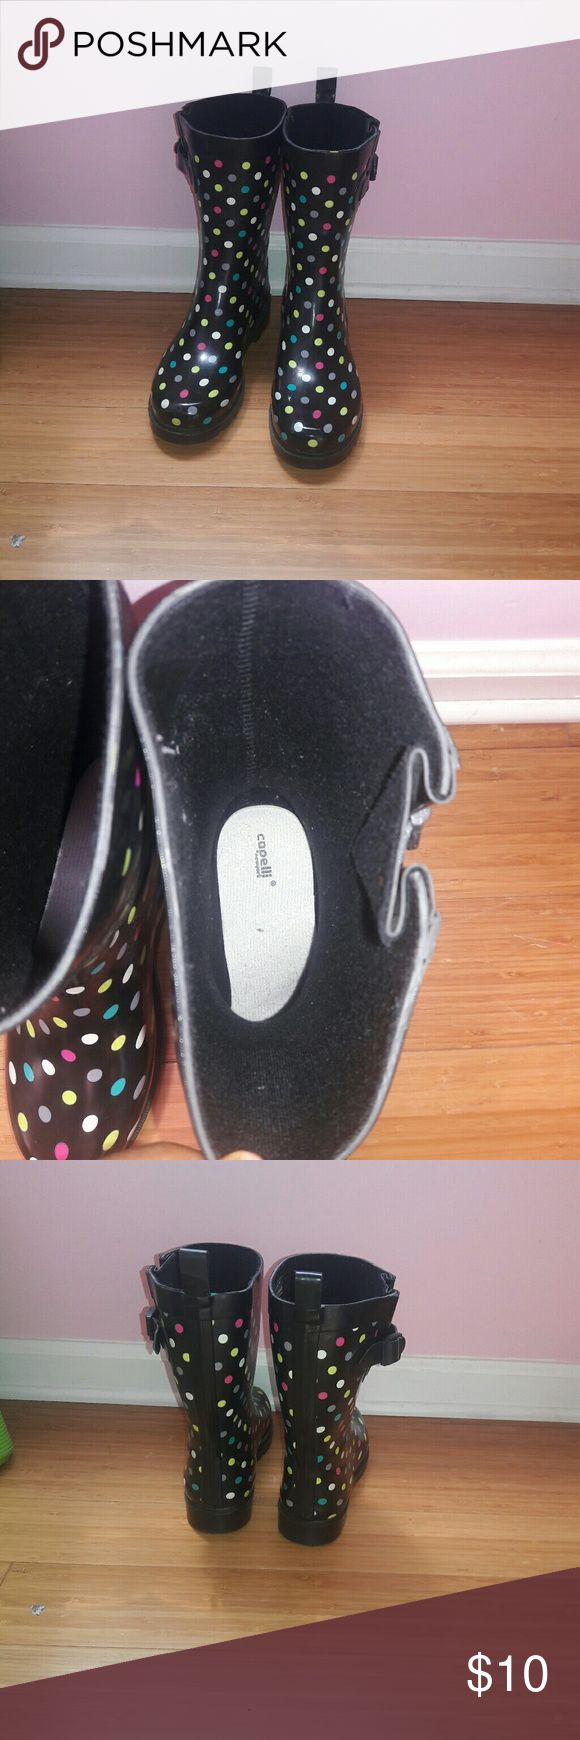 Capelli polka dot rain boots!! Cute multi colored rainboots from Capelli!!! I out grew them and wore them maybe 5 times but there in good condition and they need a new home!!! Capelli of New York Shoes Winter & Rain Boots